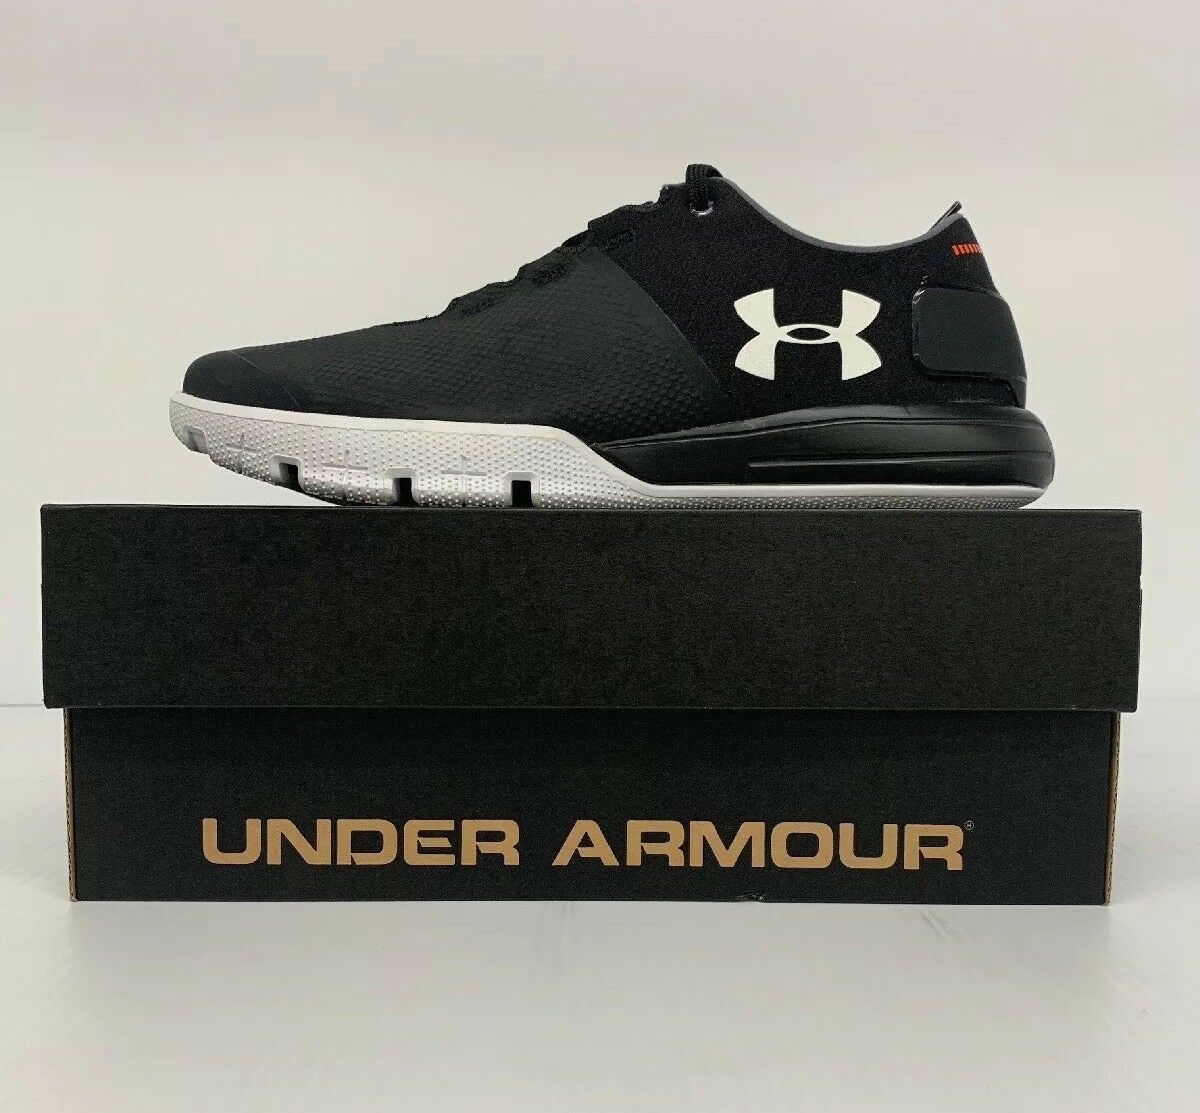 Adidas Under Armour Stealth schuhe New In Box - Free Shipping -